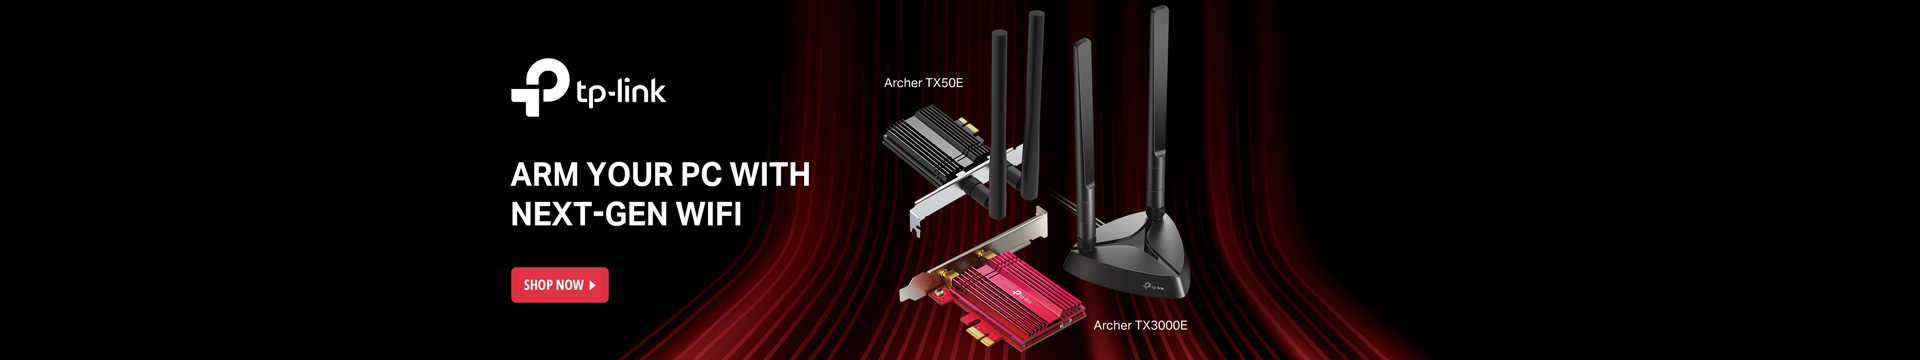 ARM YOUR PC WITH NEXT-GEN WIFI